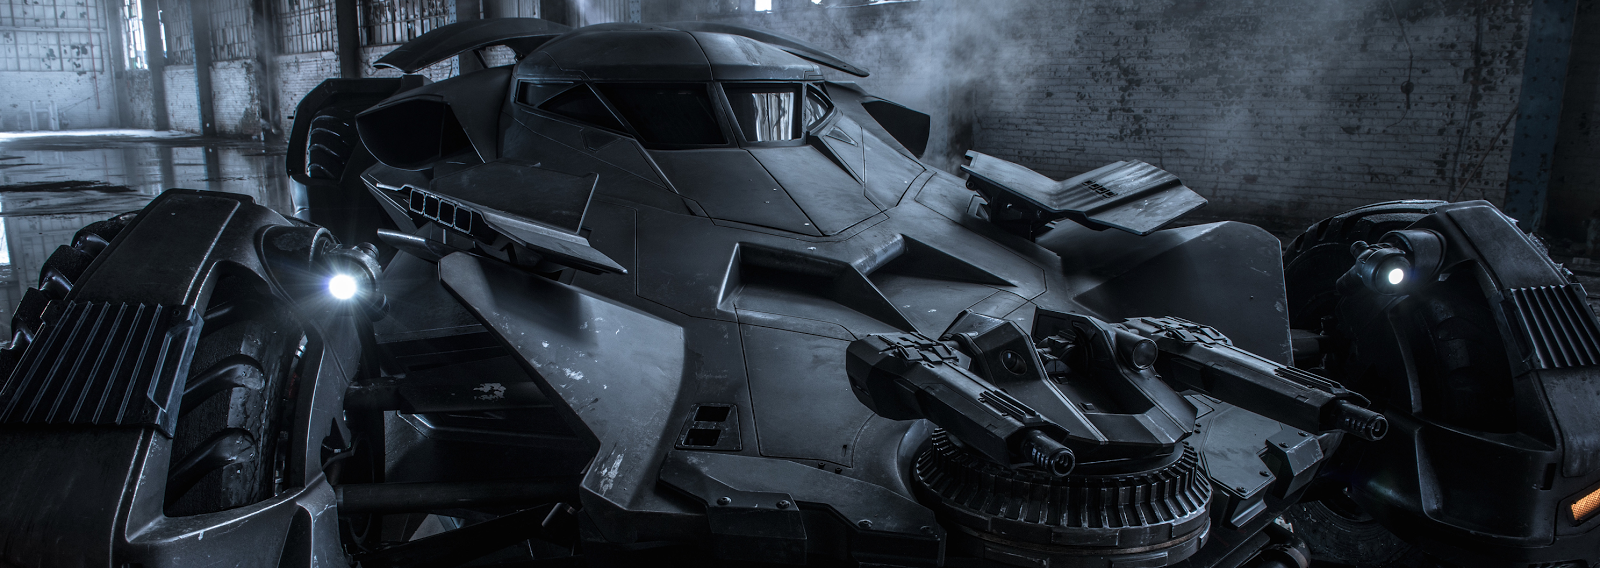 Batman v Superman: Dawn of Justice - New Image of Batmobile